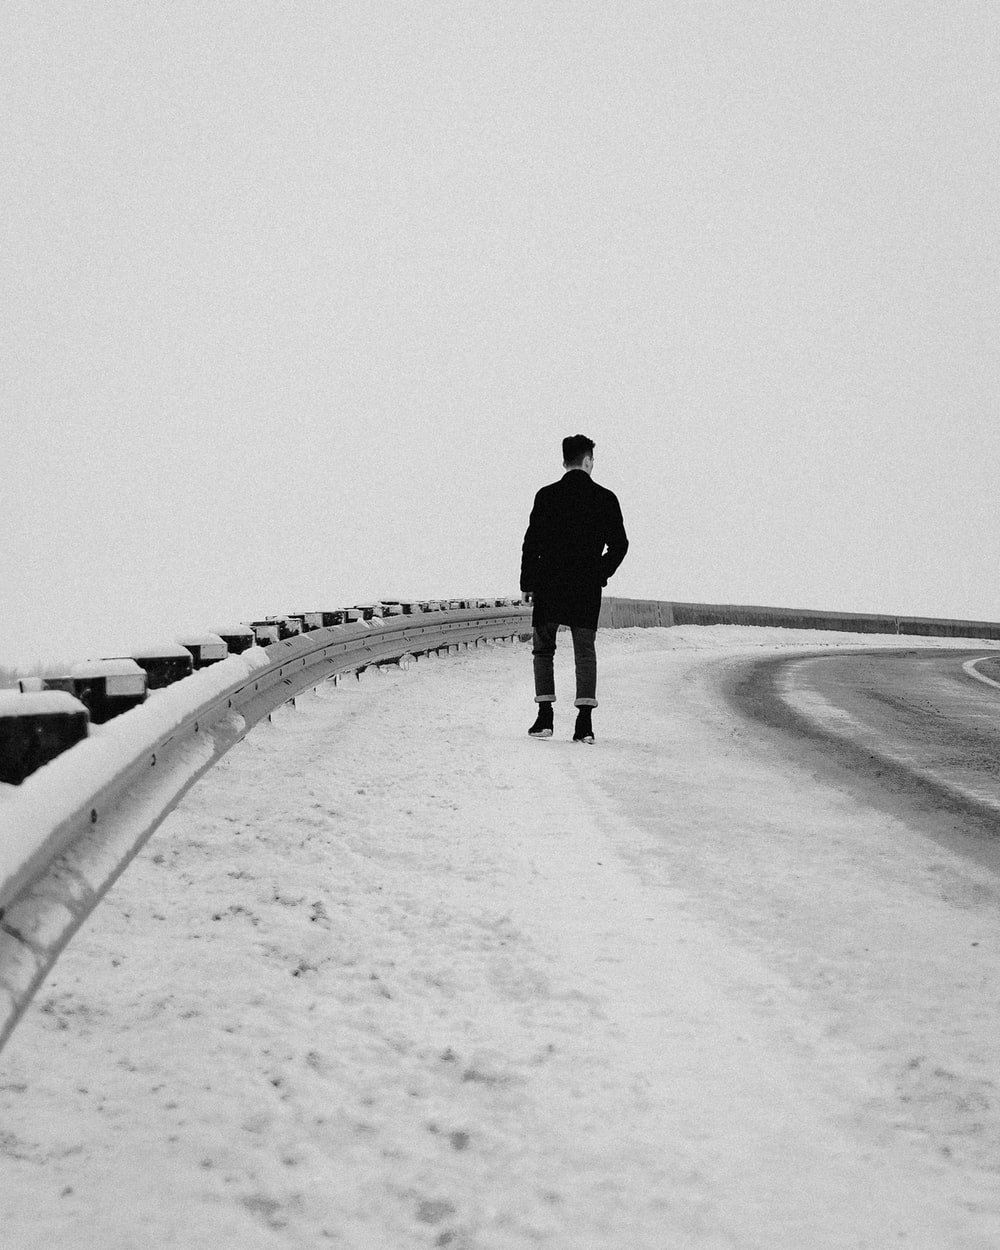 man in black jacket walking on snow covered road during daytime